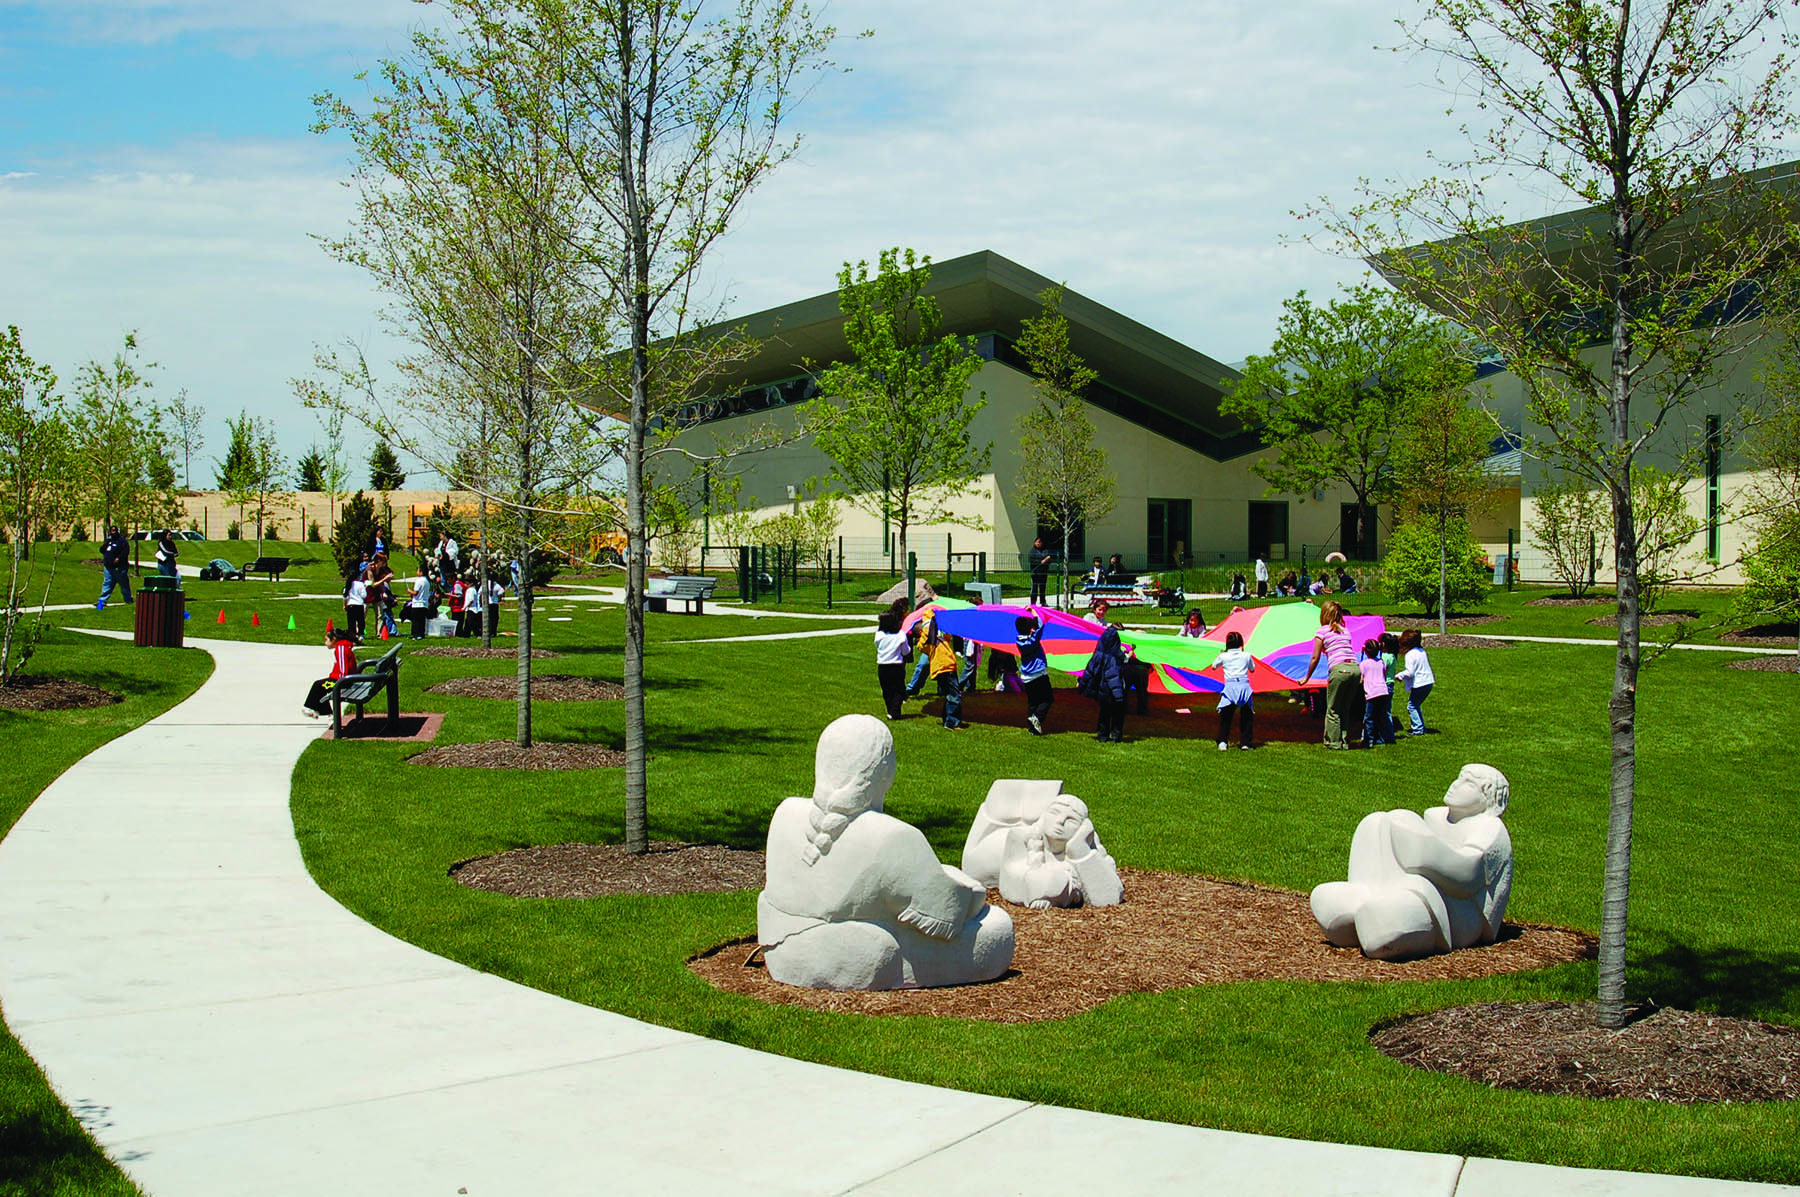 KOHL CHILDREN'S MUSEUM: Benefitting from Altru through Blackbaud University